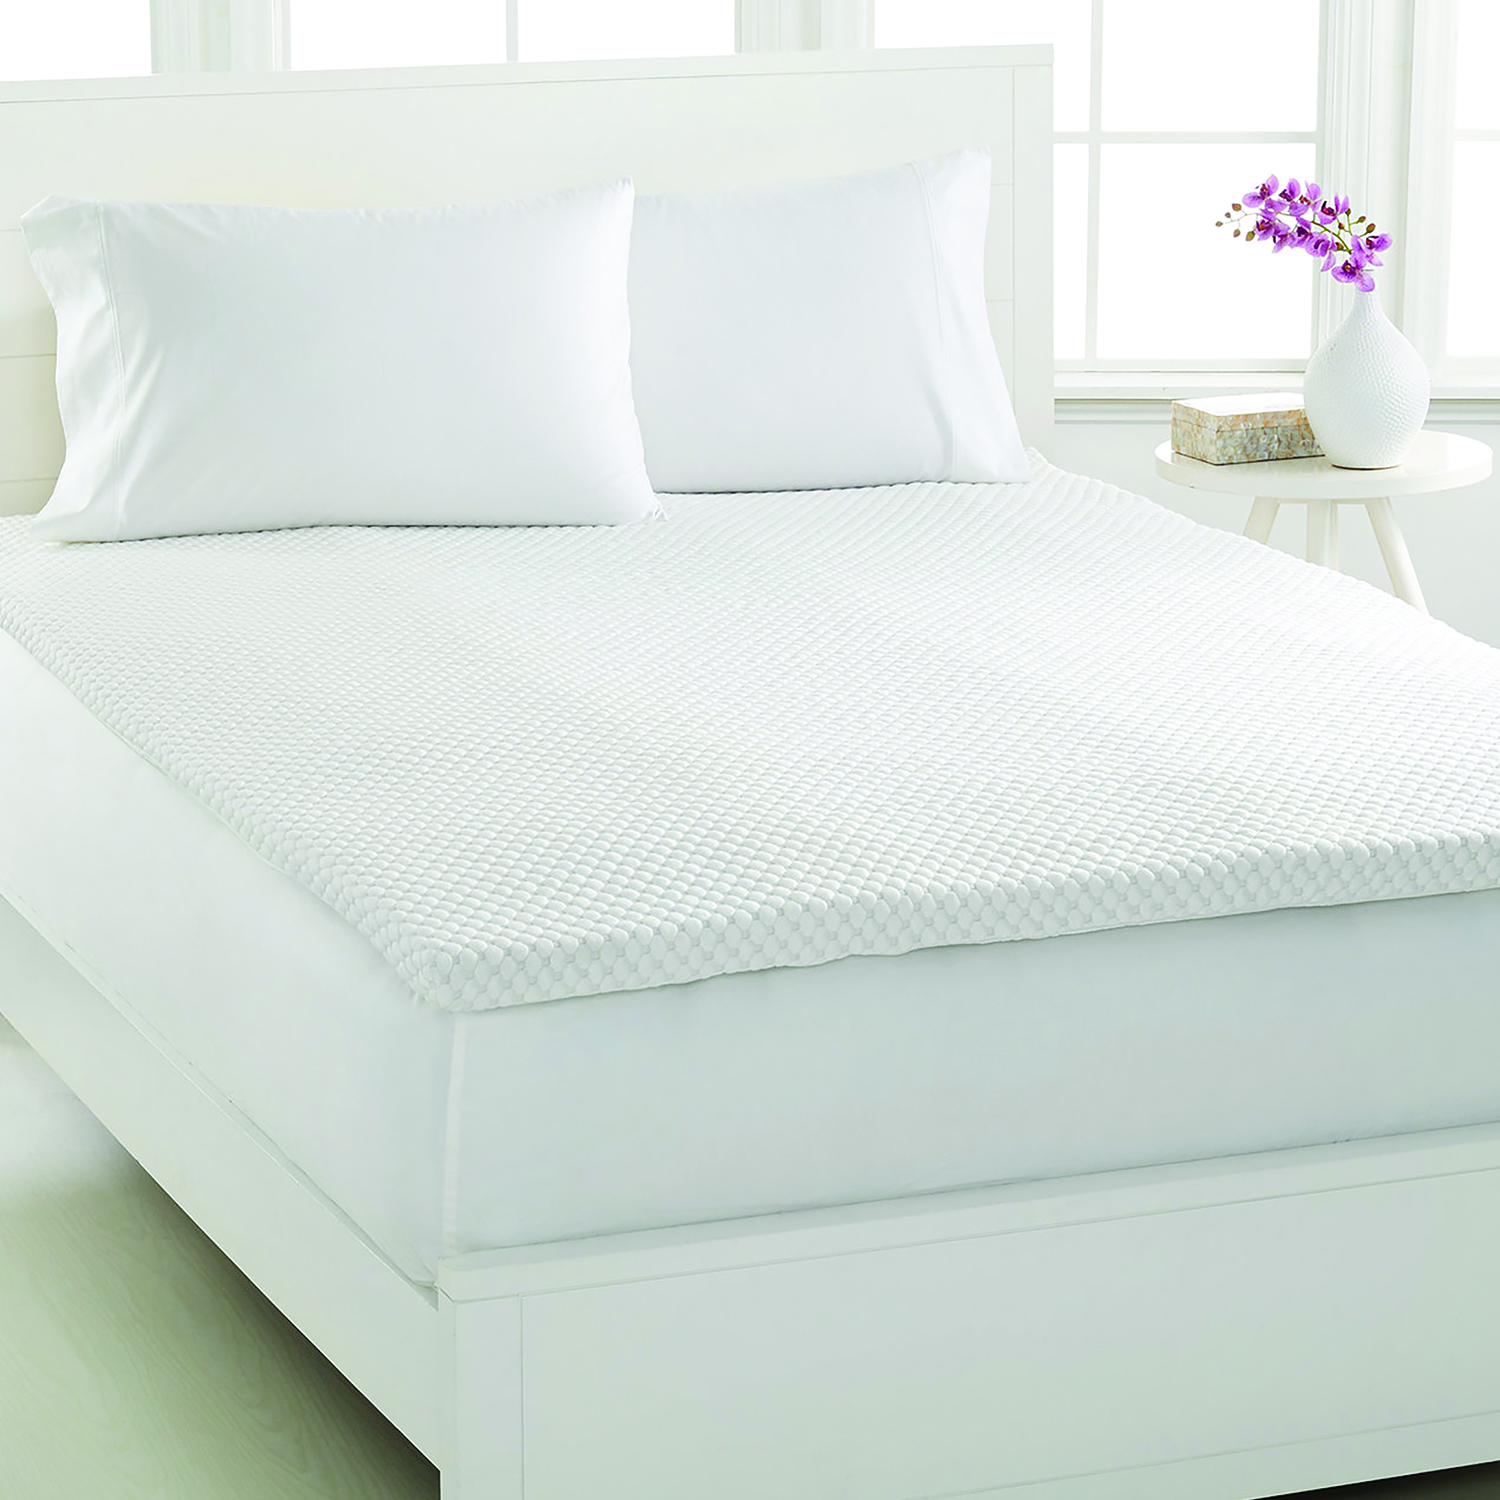 Premium Luxury Memory Foam Mattress Topper Home Store More